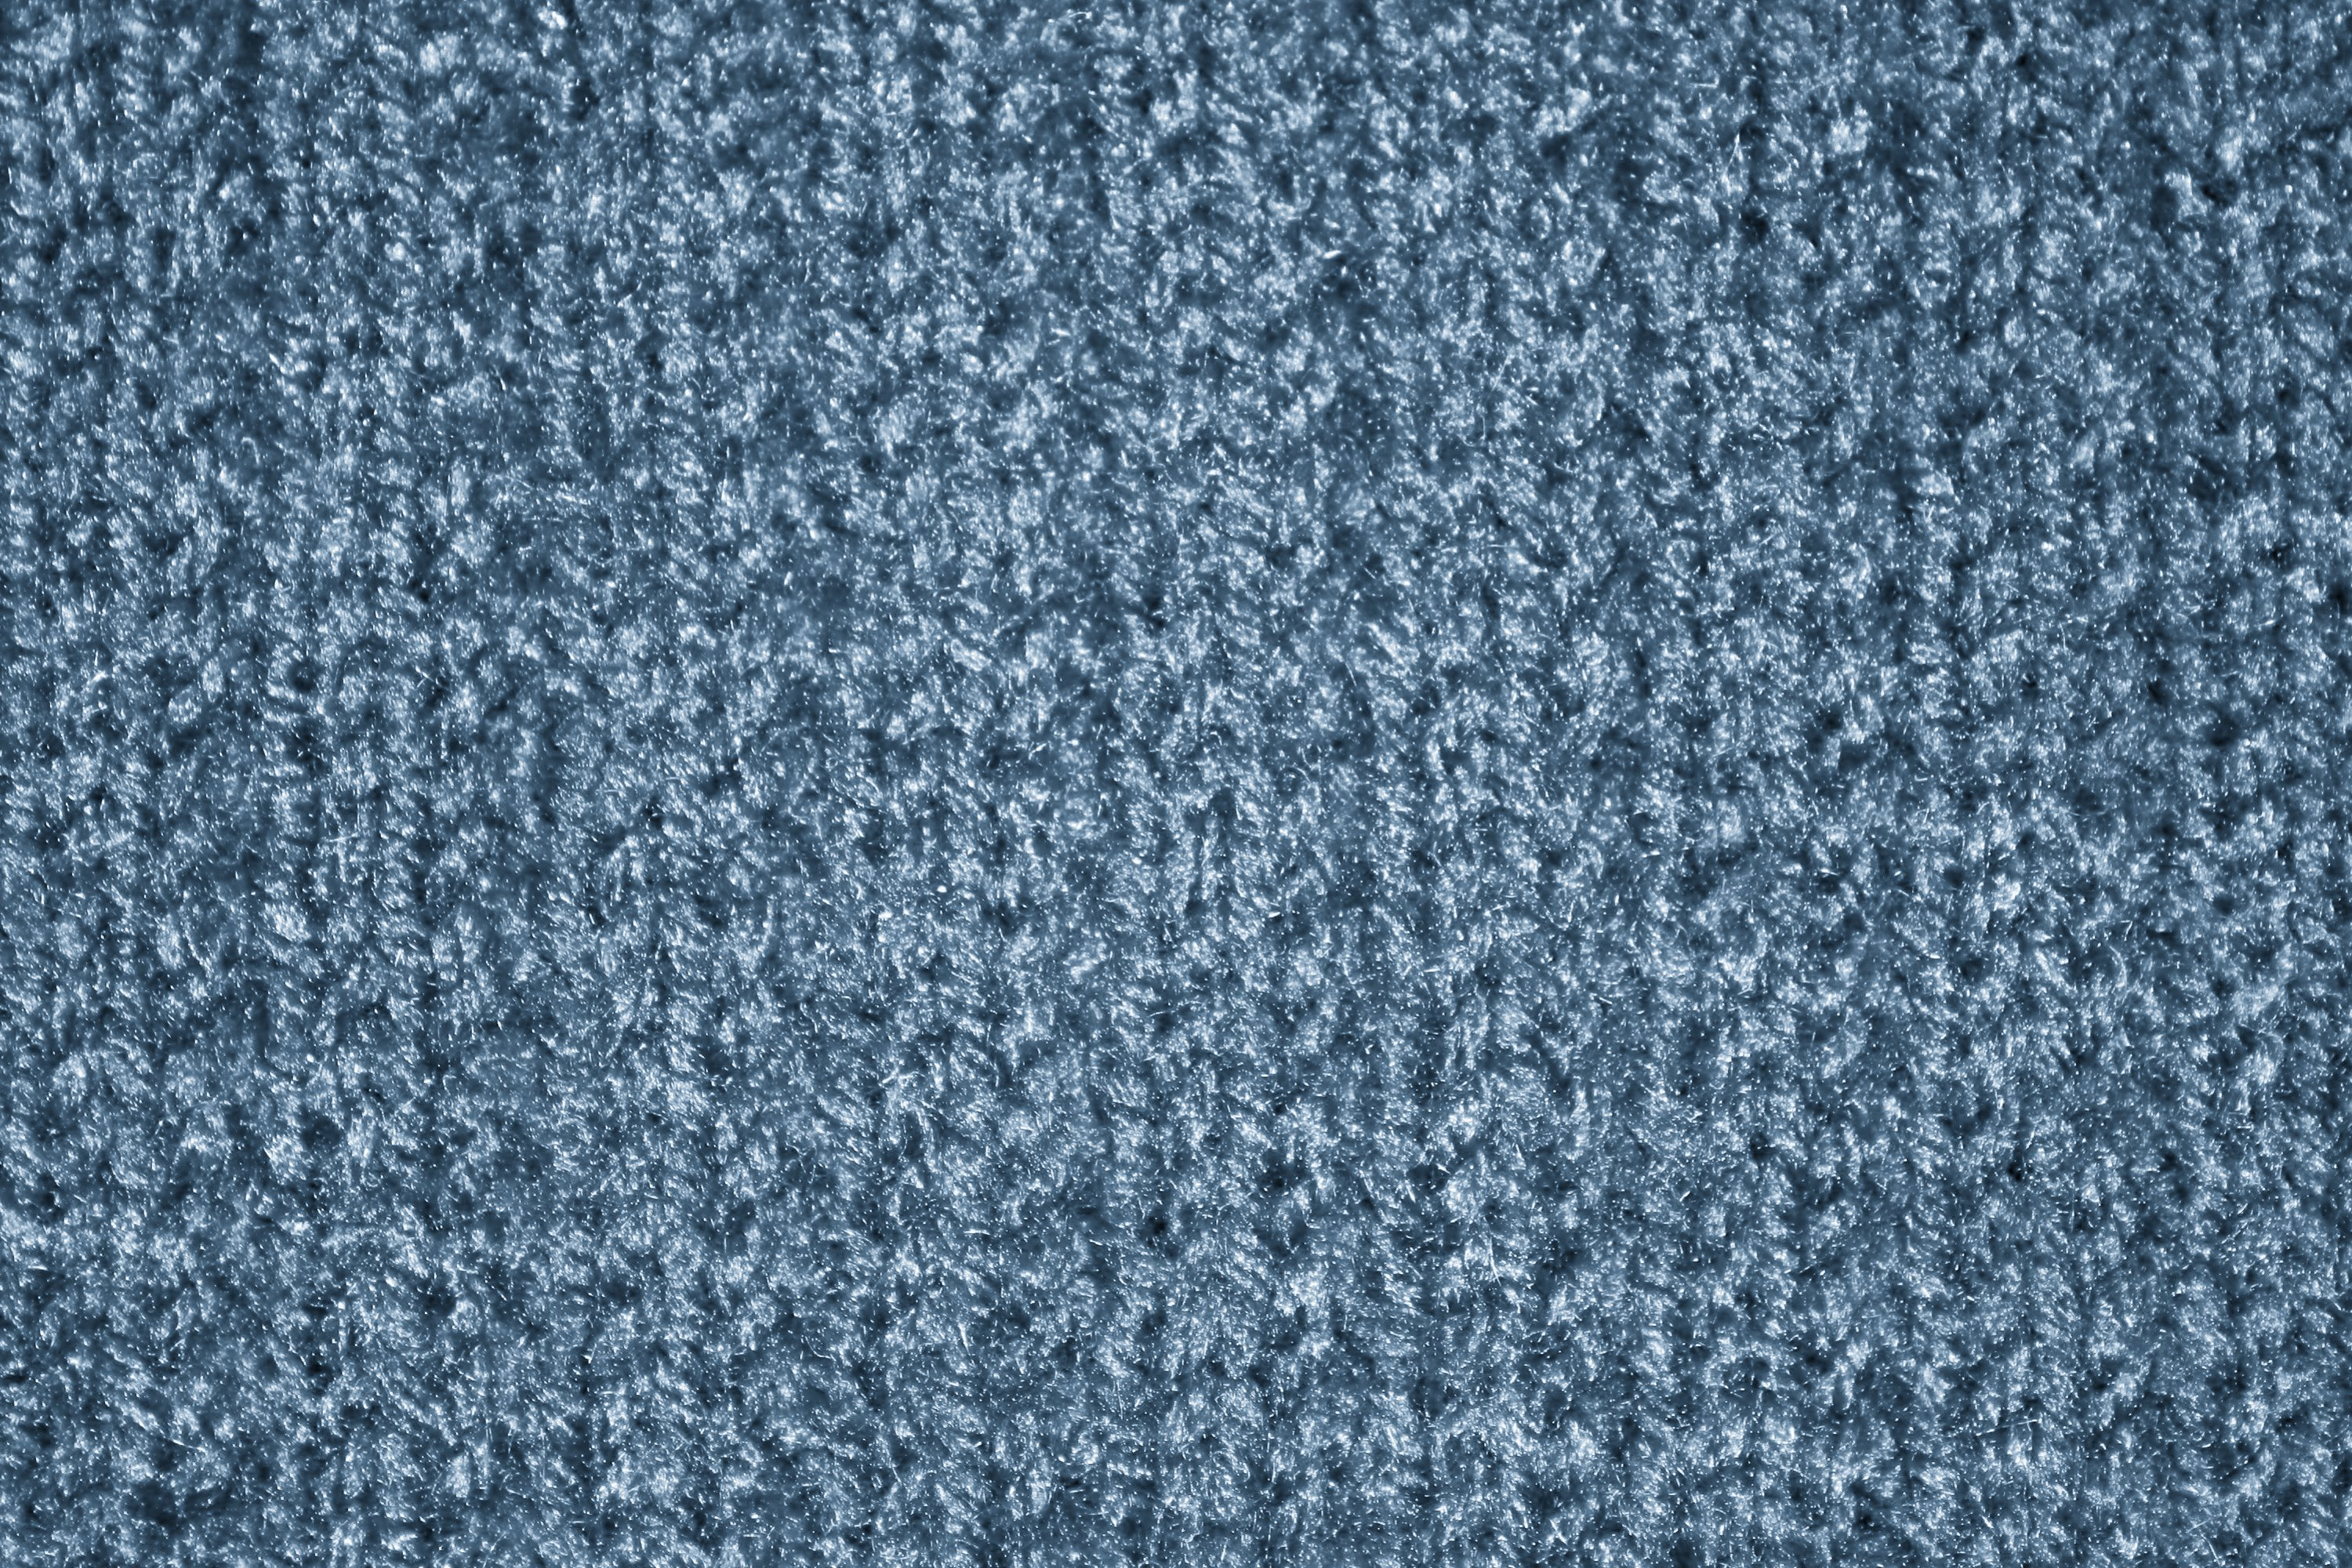 Open Source Knitting Pattern Generator : Blue Gray Knit Texture Picture Free Photograph Photos Public Domain